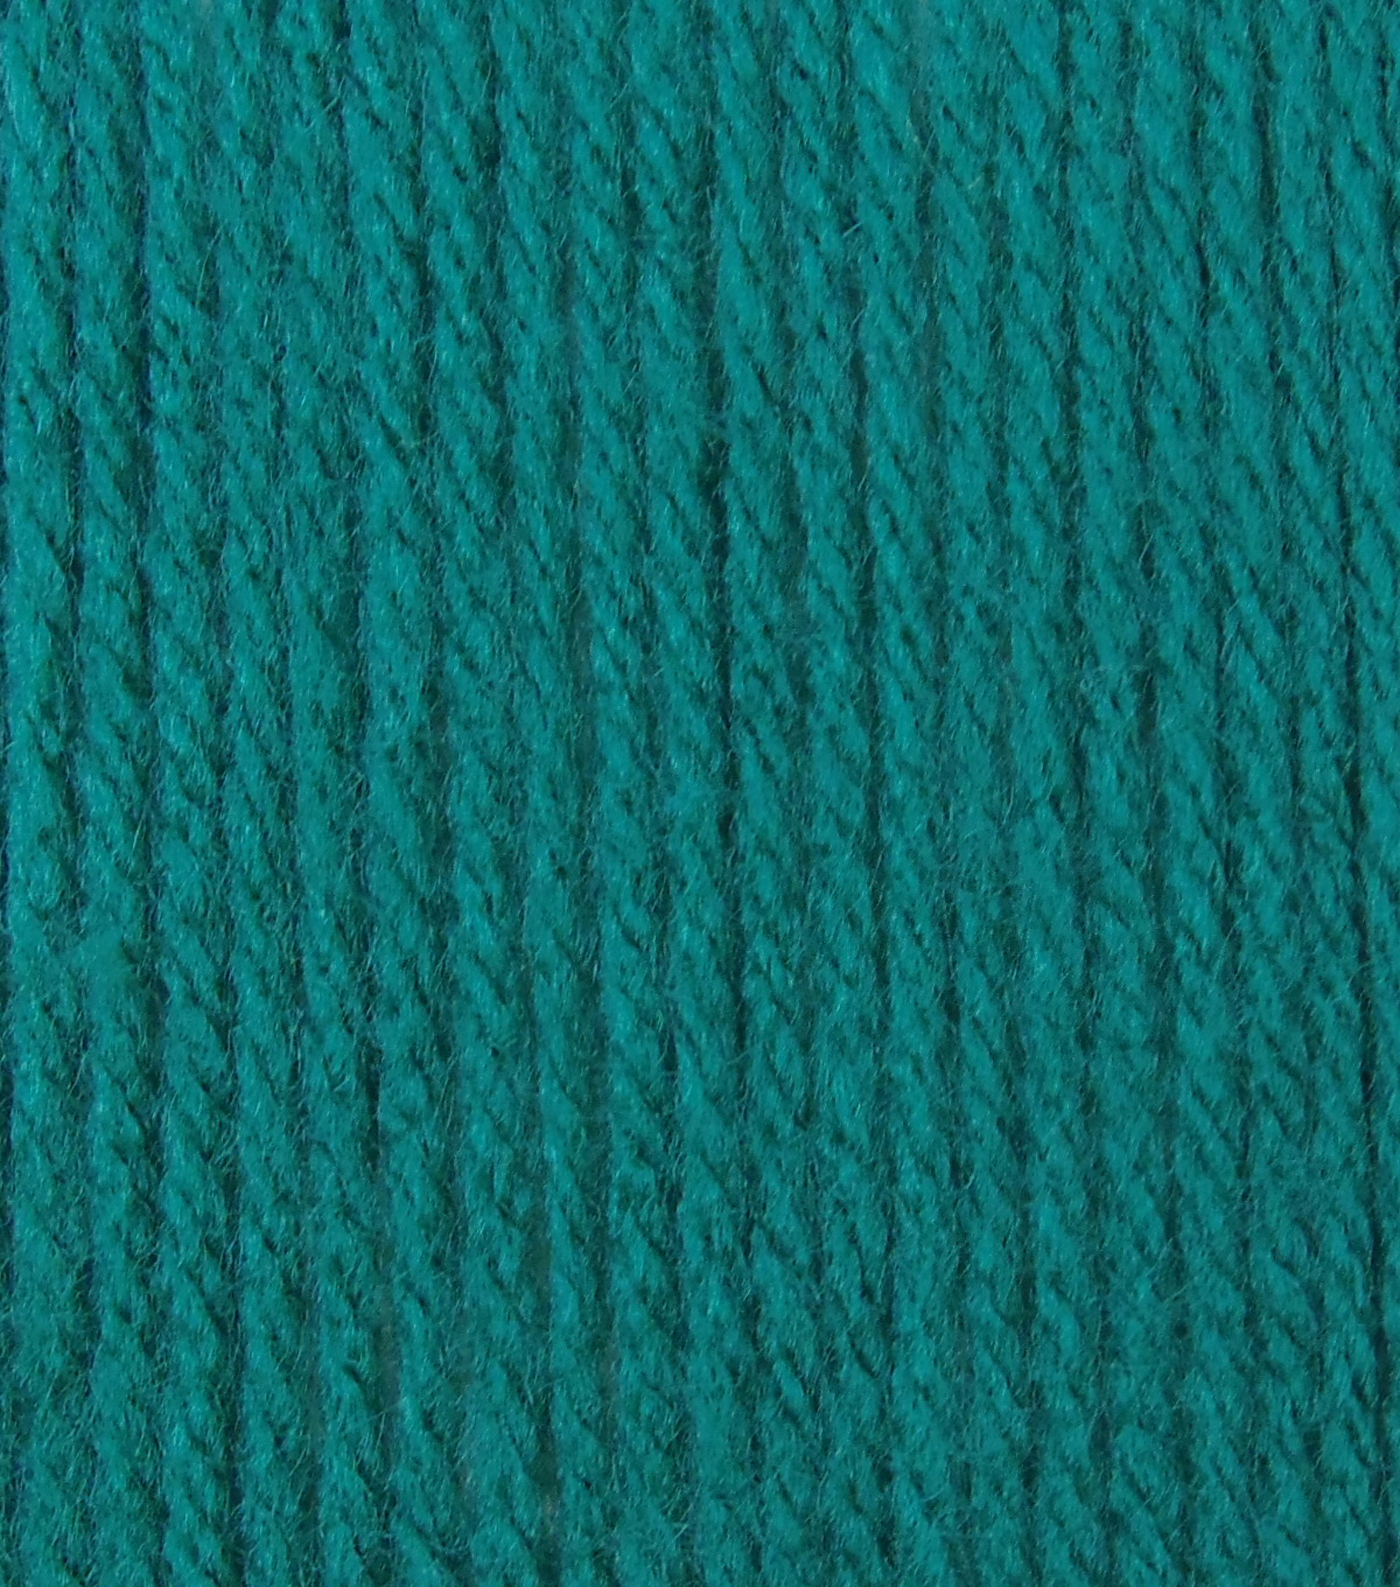 Big Twist Collection Value Worsted Yarn, Dark Teal